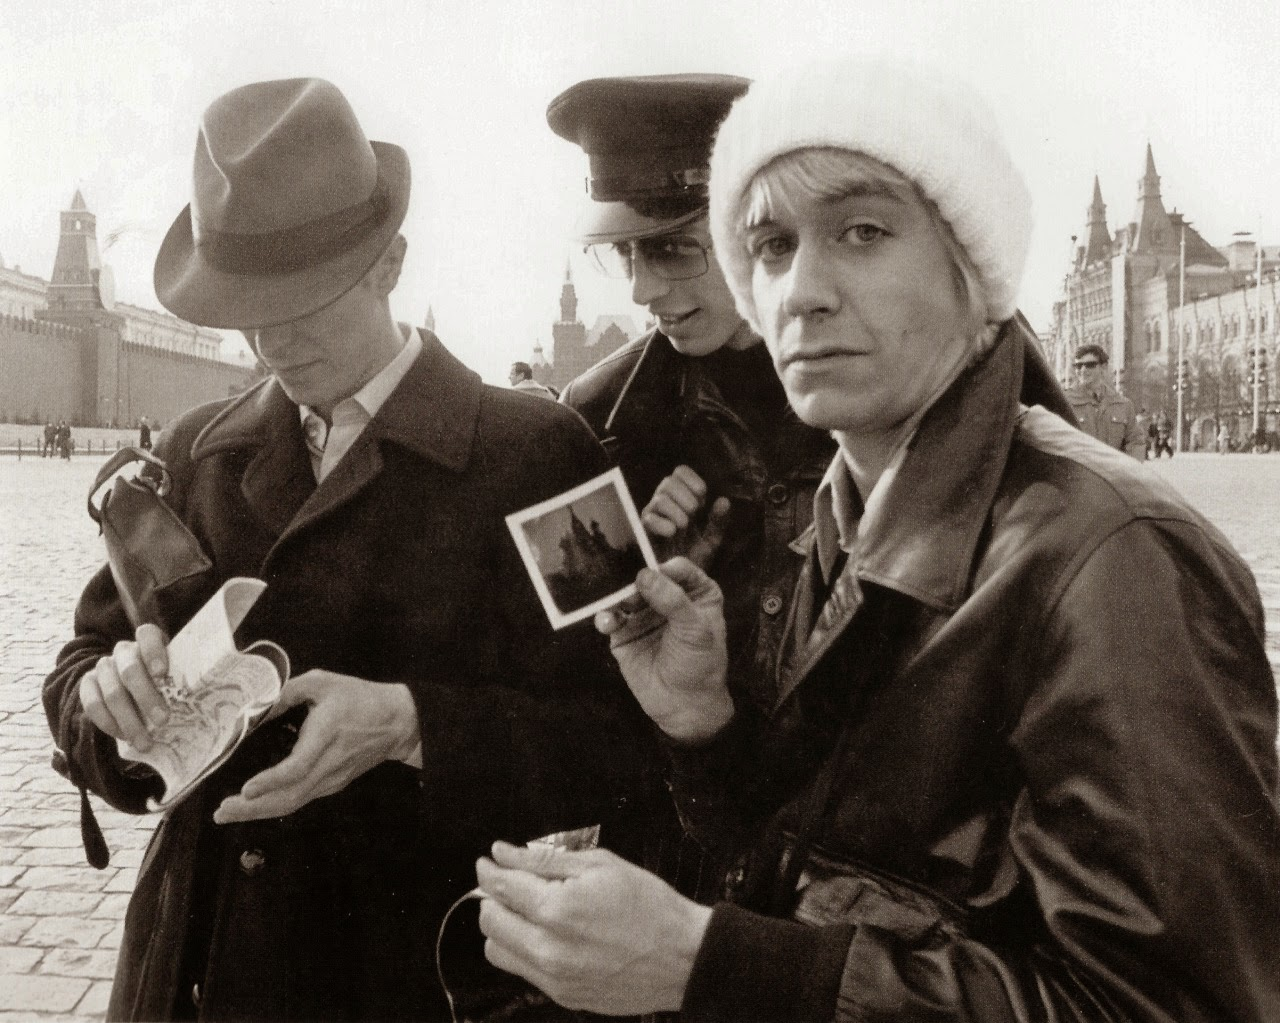 bowie and iggy pop relationship